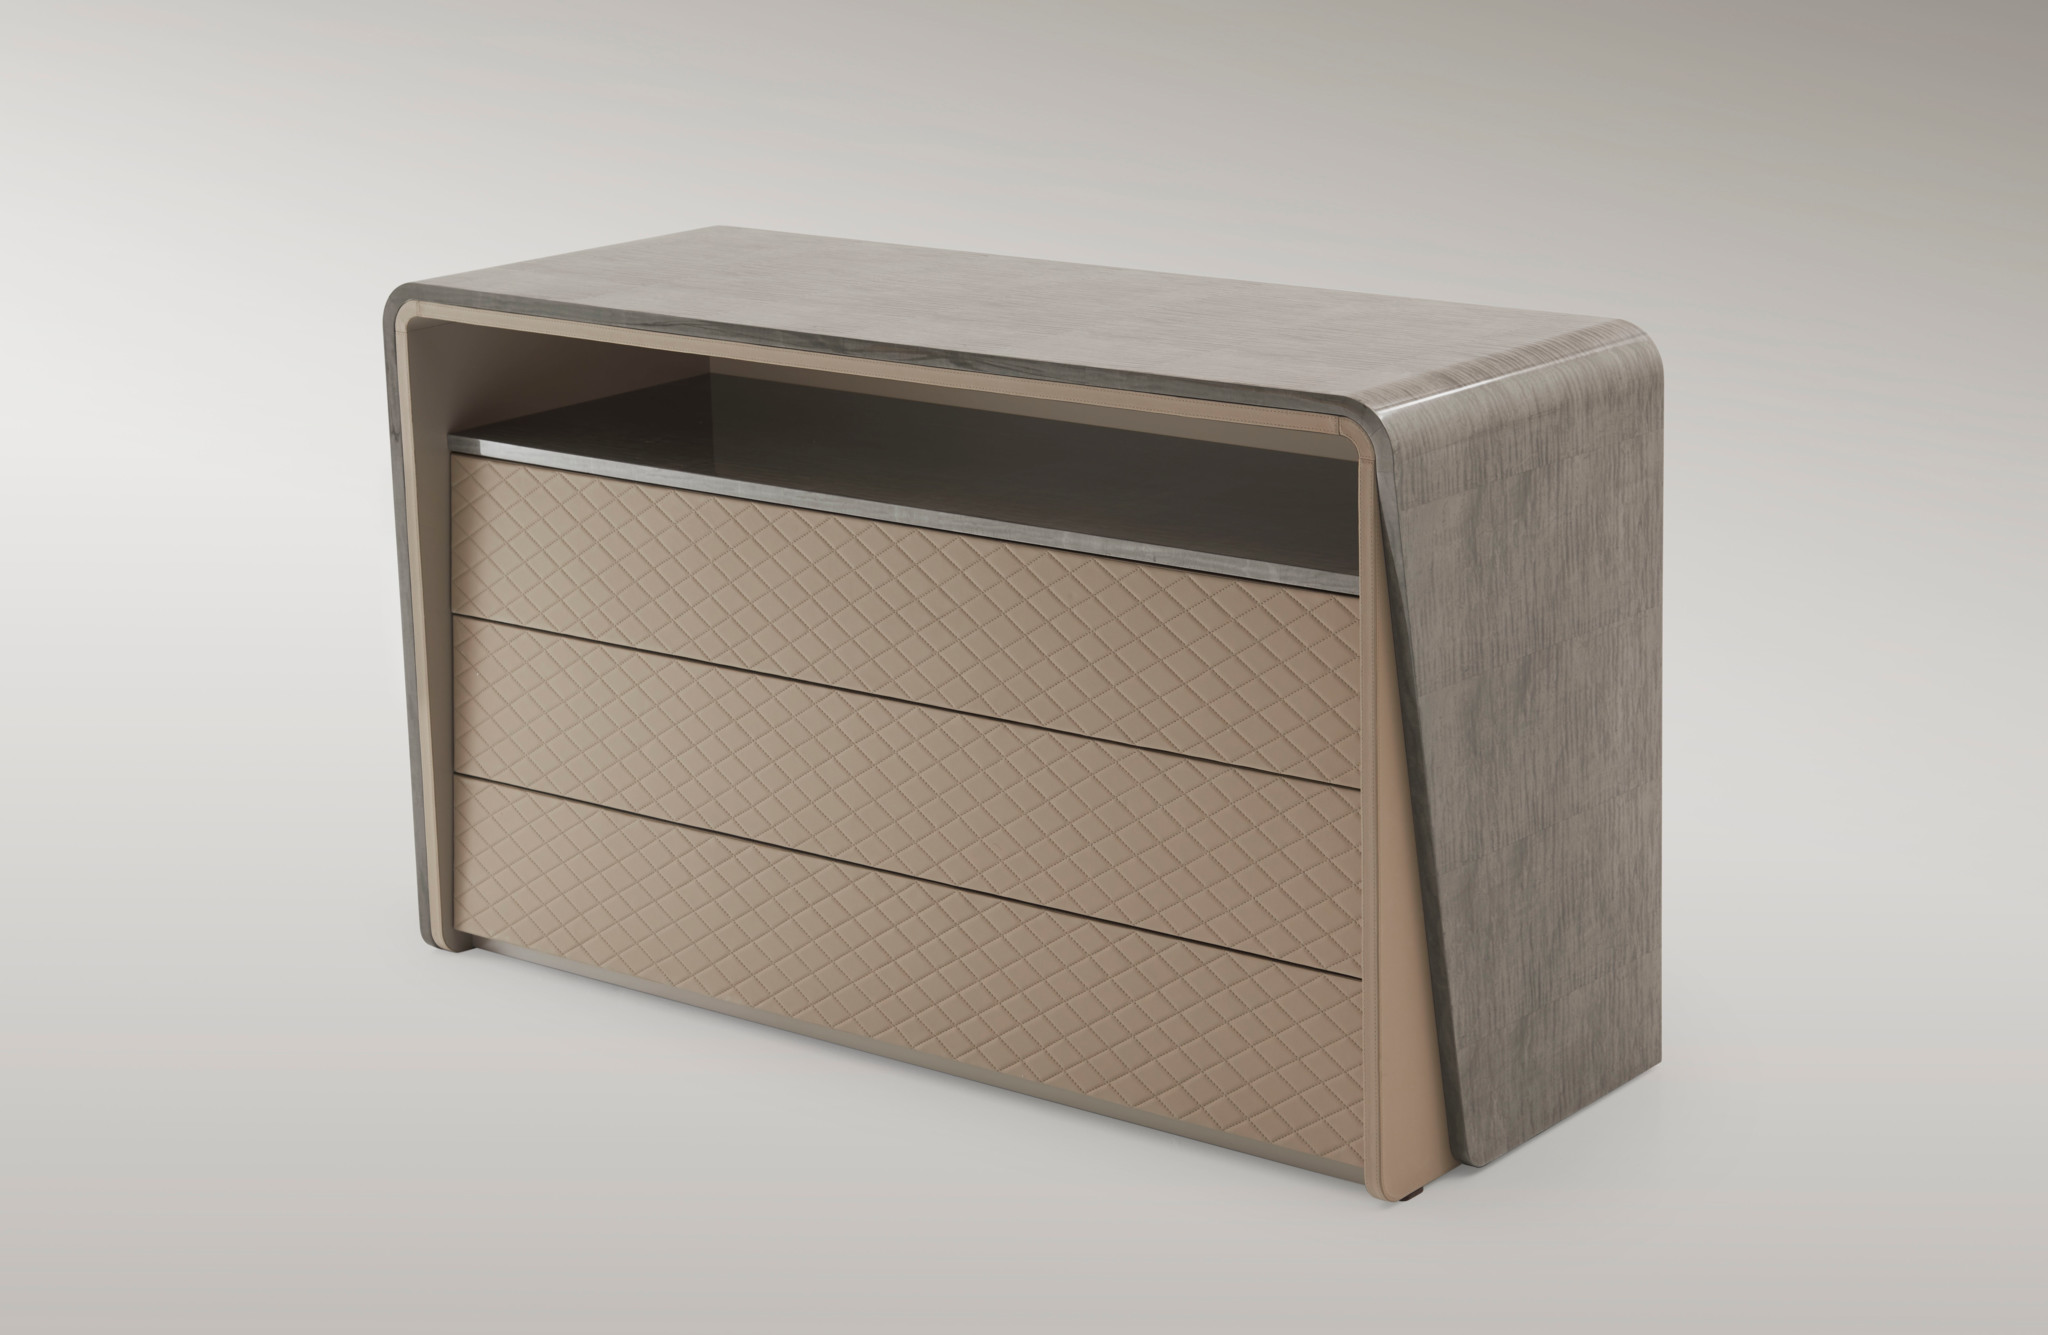 bent00230000002_bentley_eastgate_chest_of_drawers_2_458cb601505fea12e98ce14ed95b1347